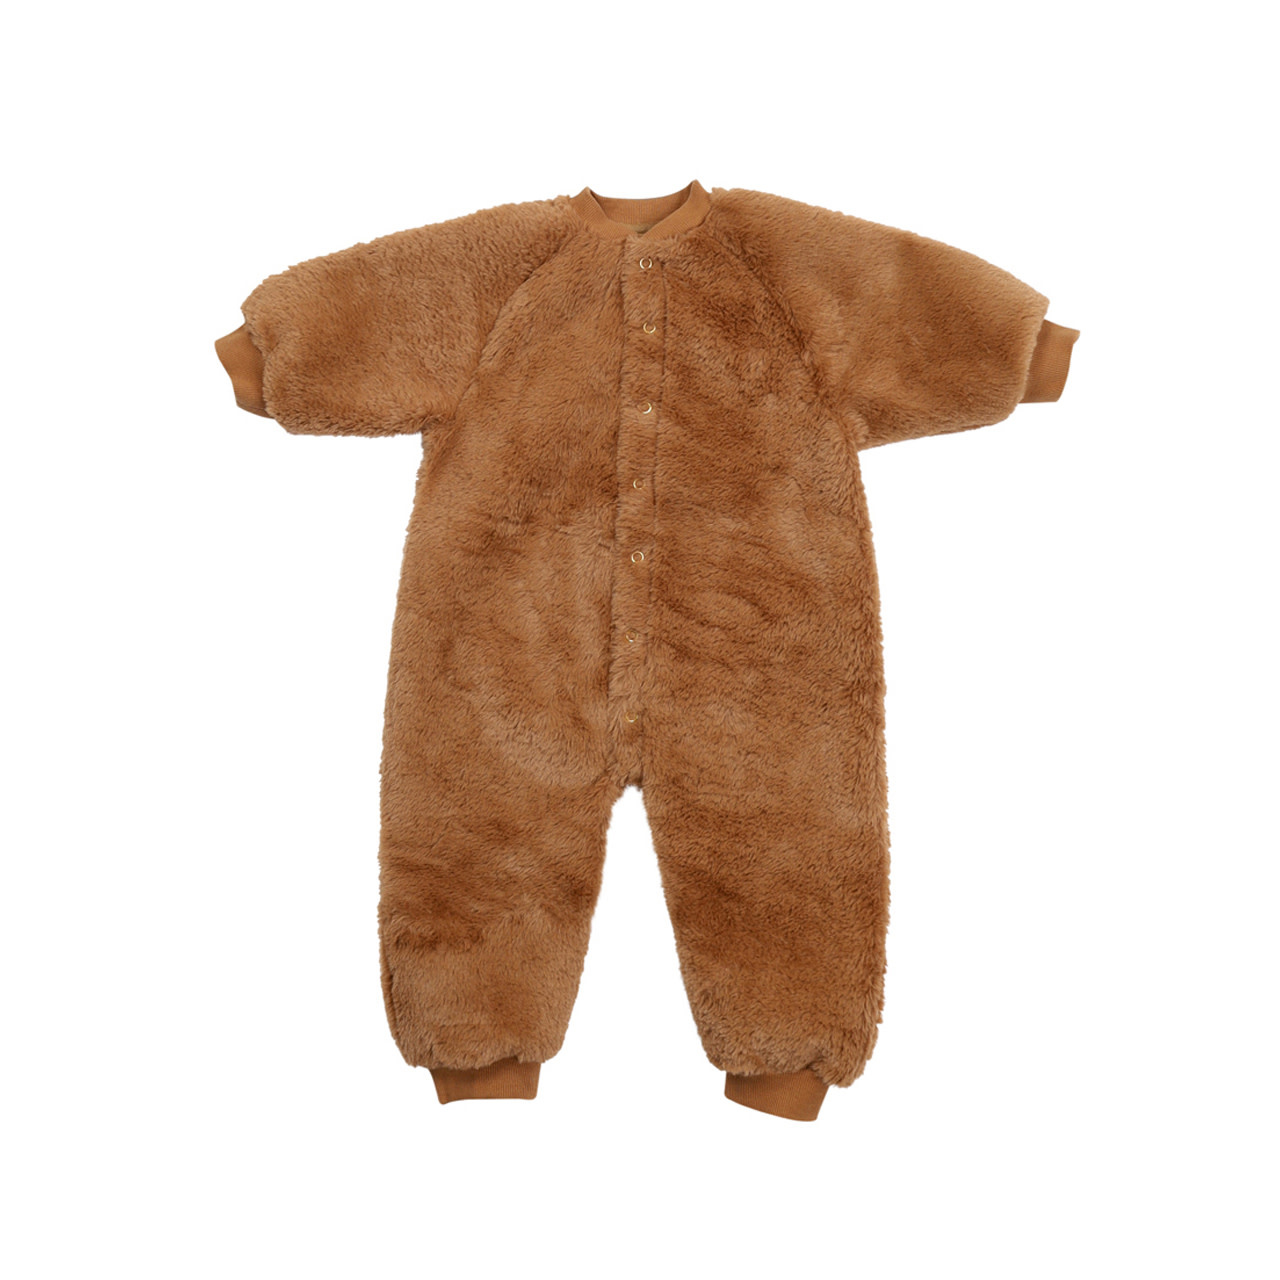 Maed For mini Maed for mini - Baby one piece sleepy sloth